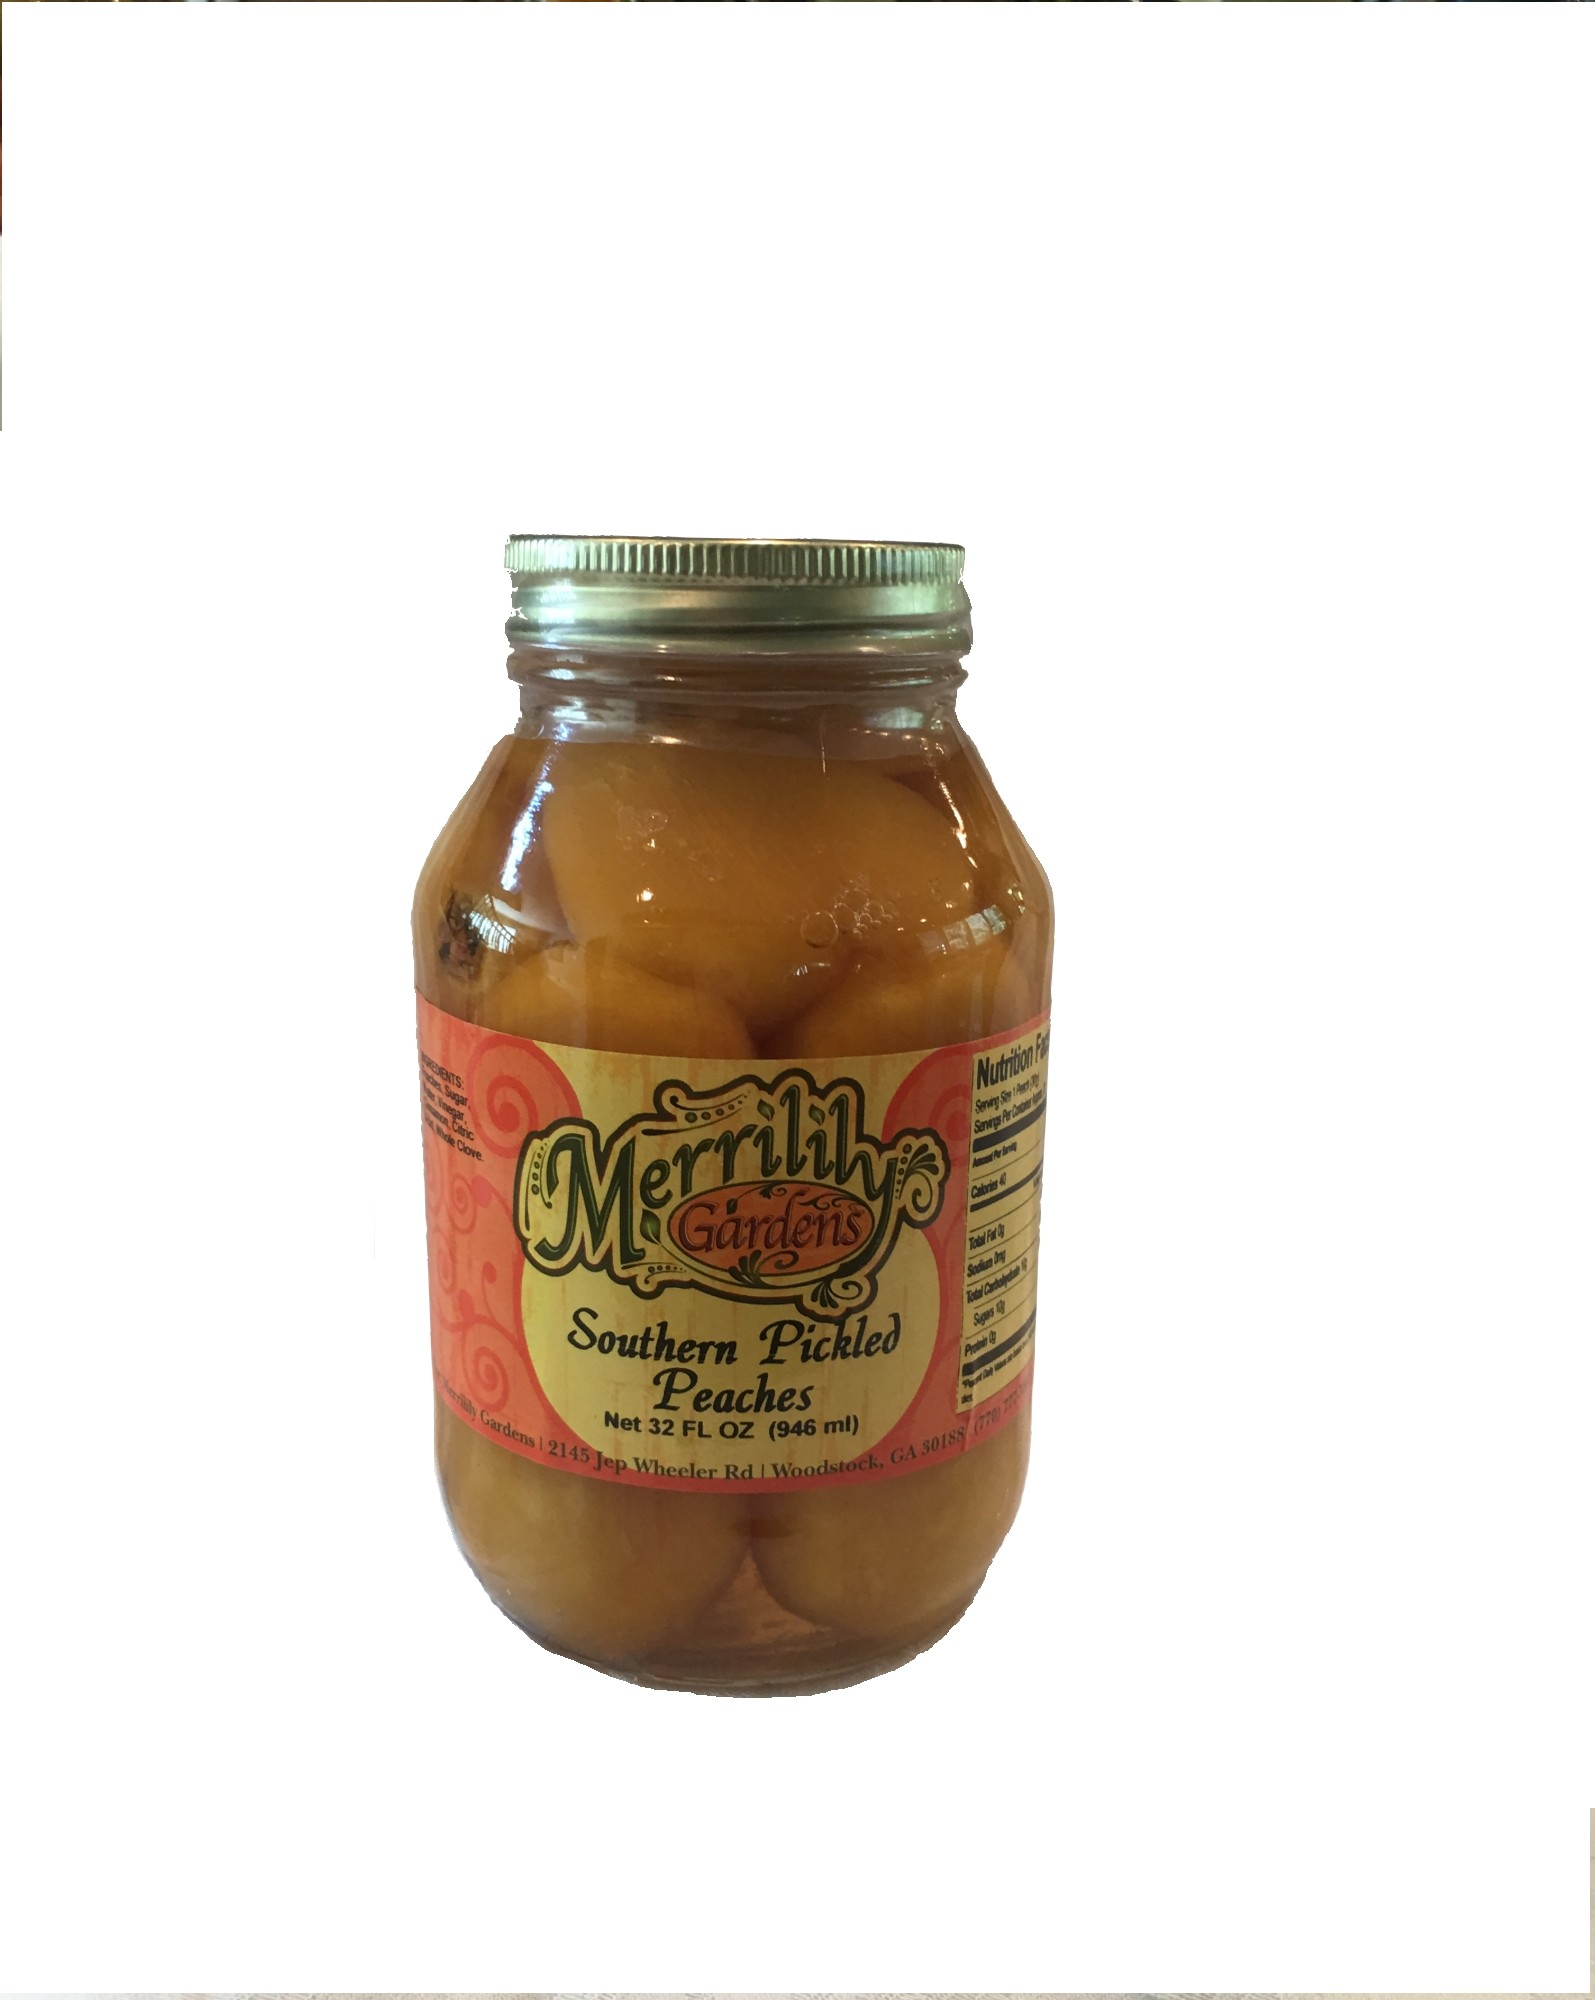 Southern-Pickled-Peaches